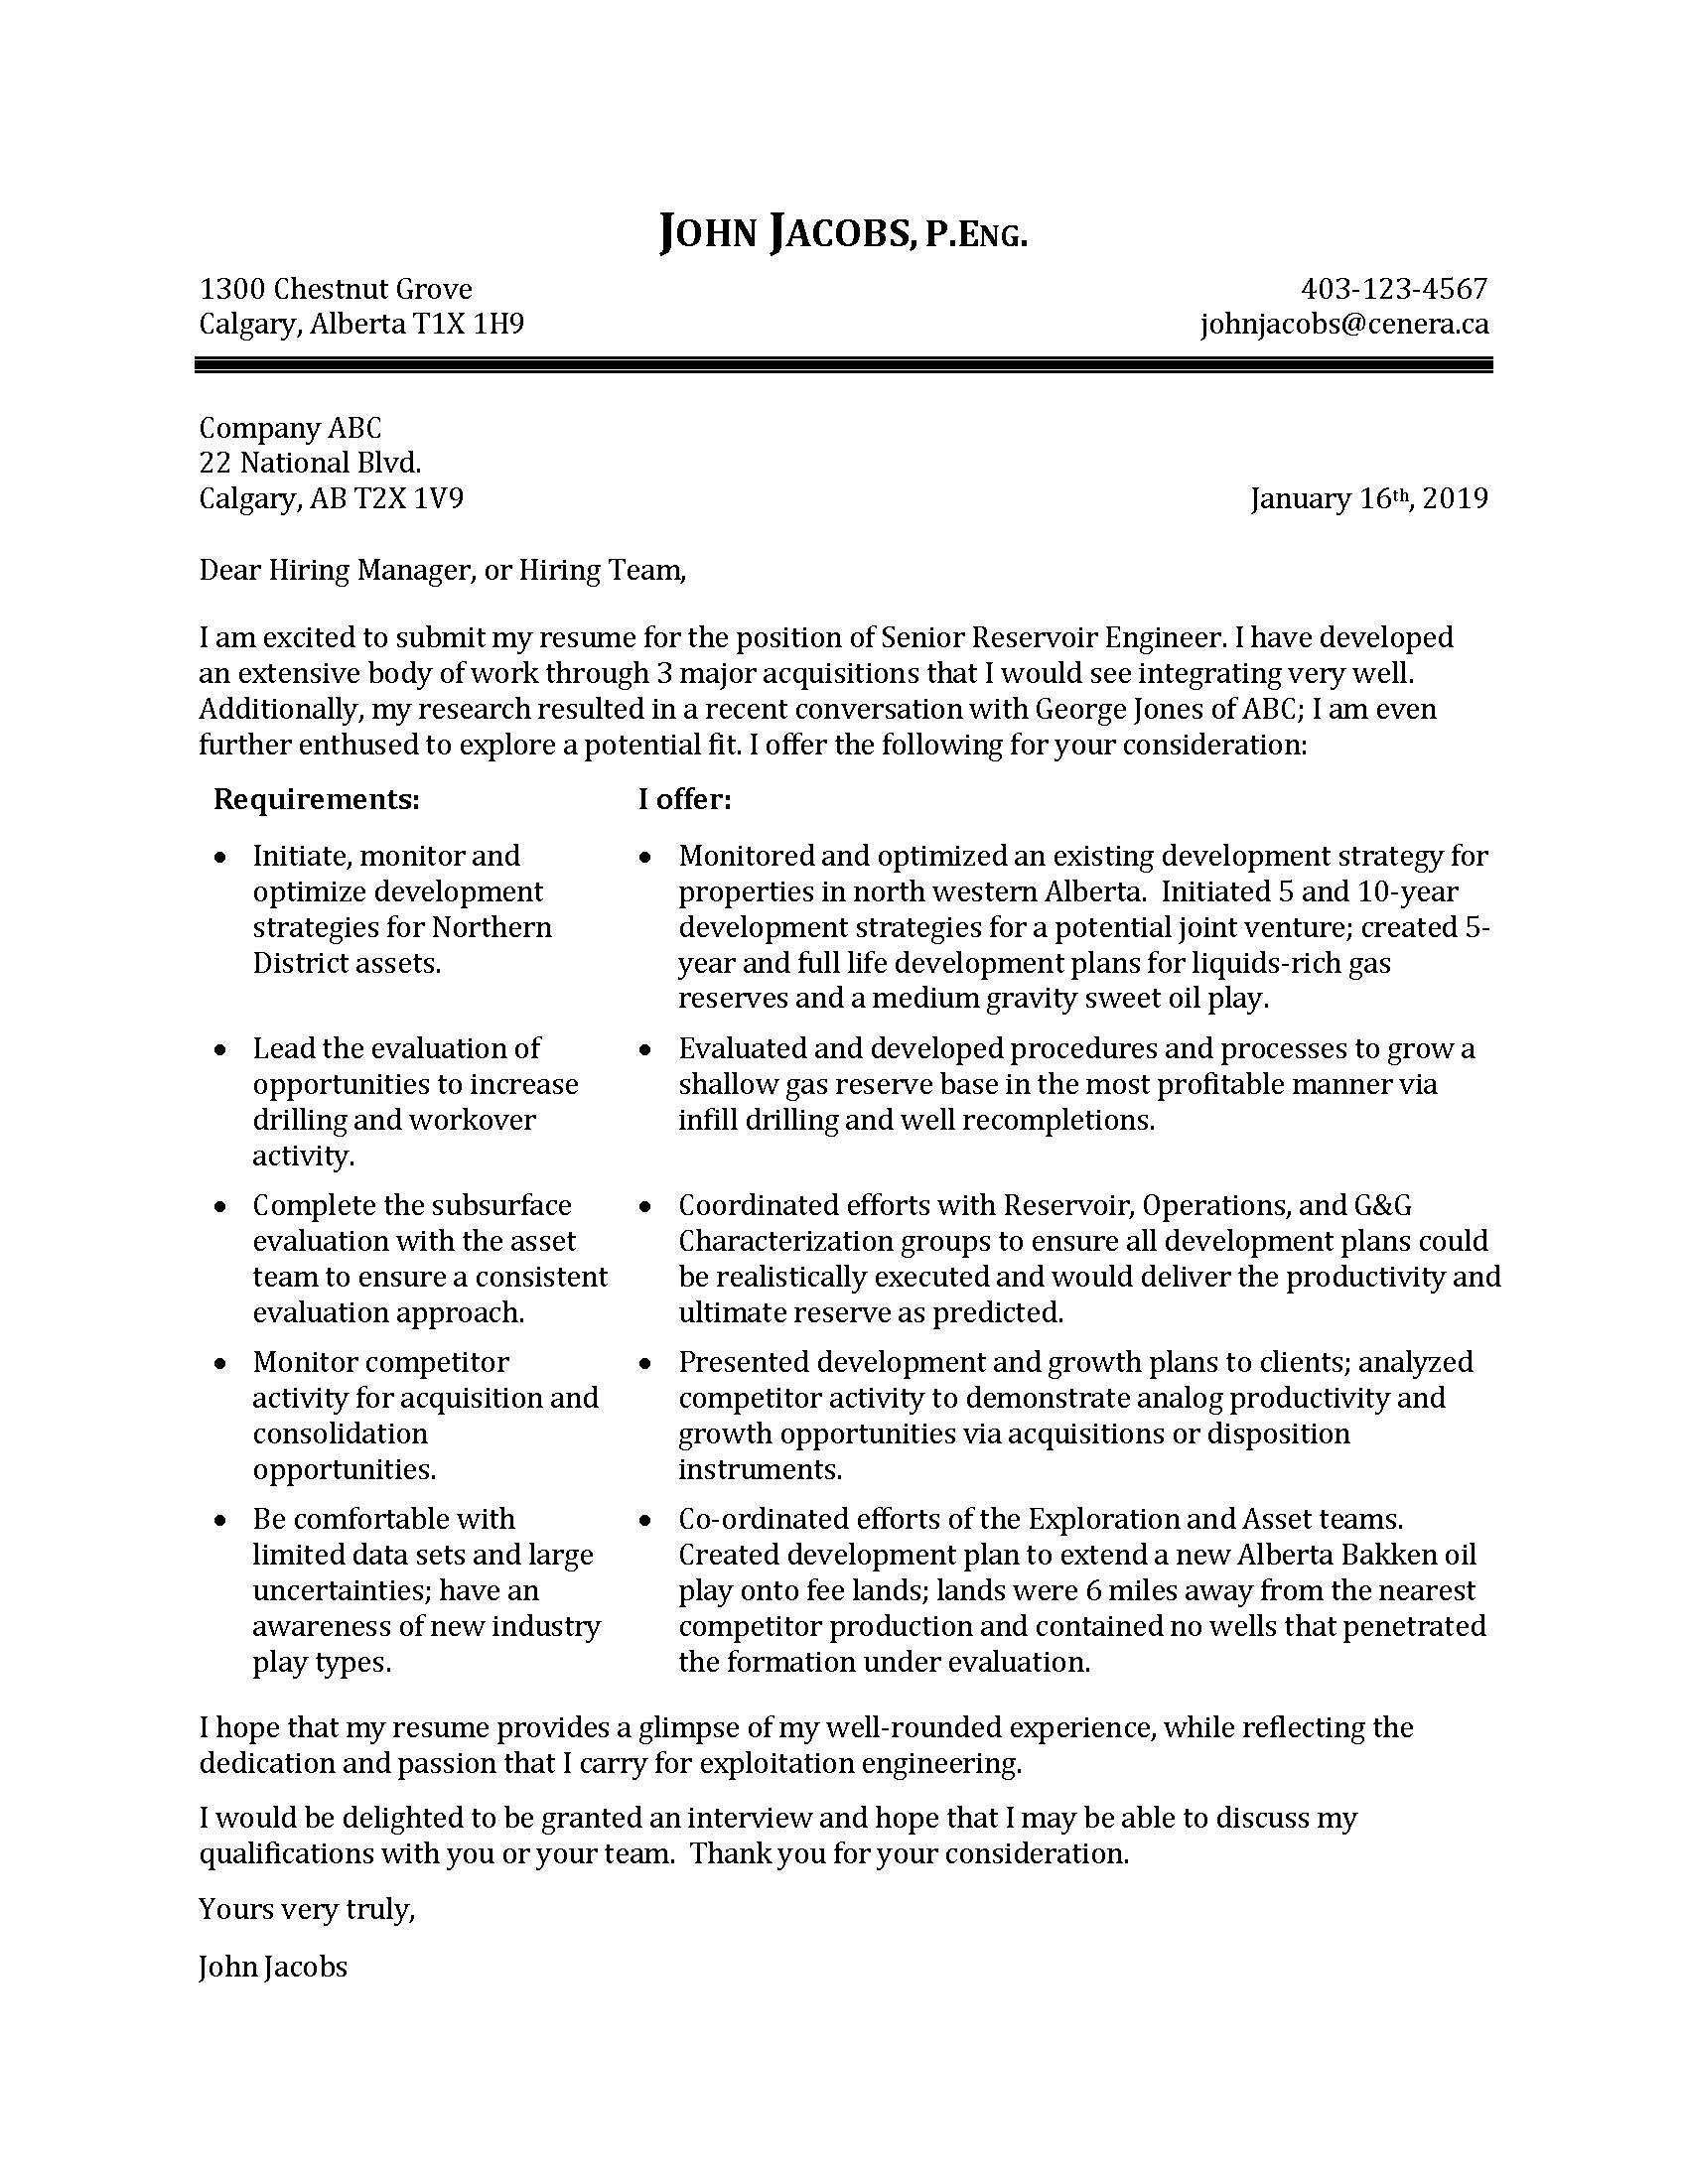 cover letters bother cenera letter or resume first college format professional design Resume Cover Letter Or Resume First